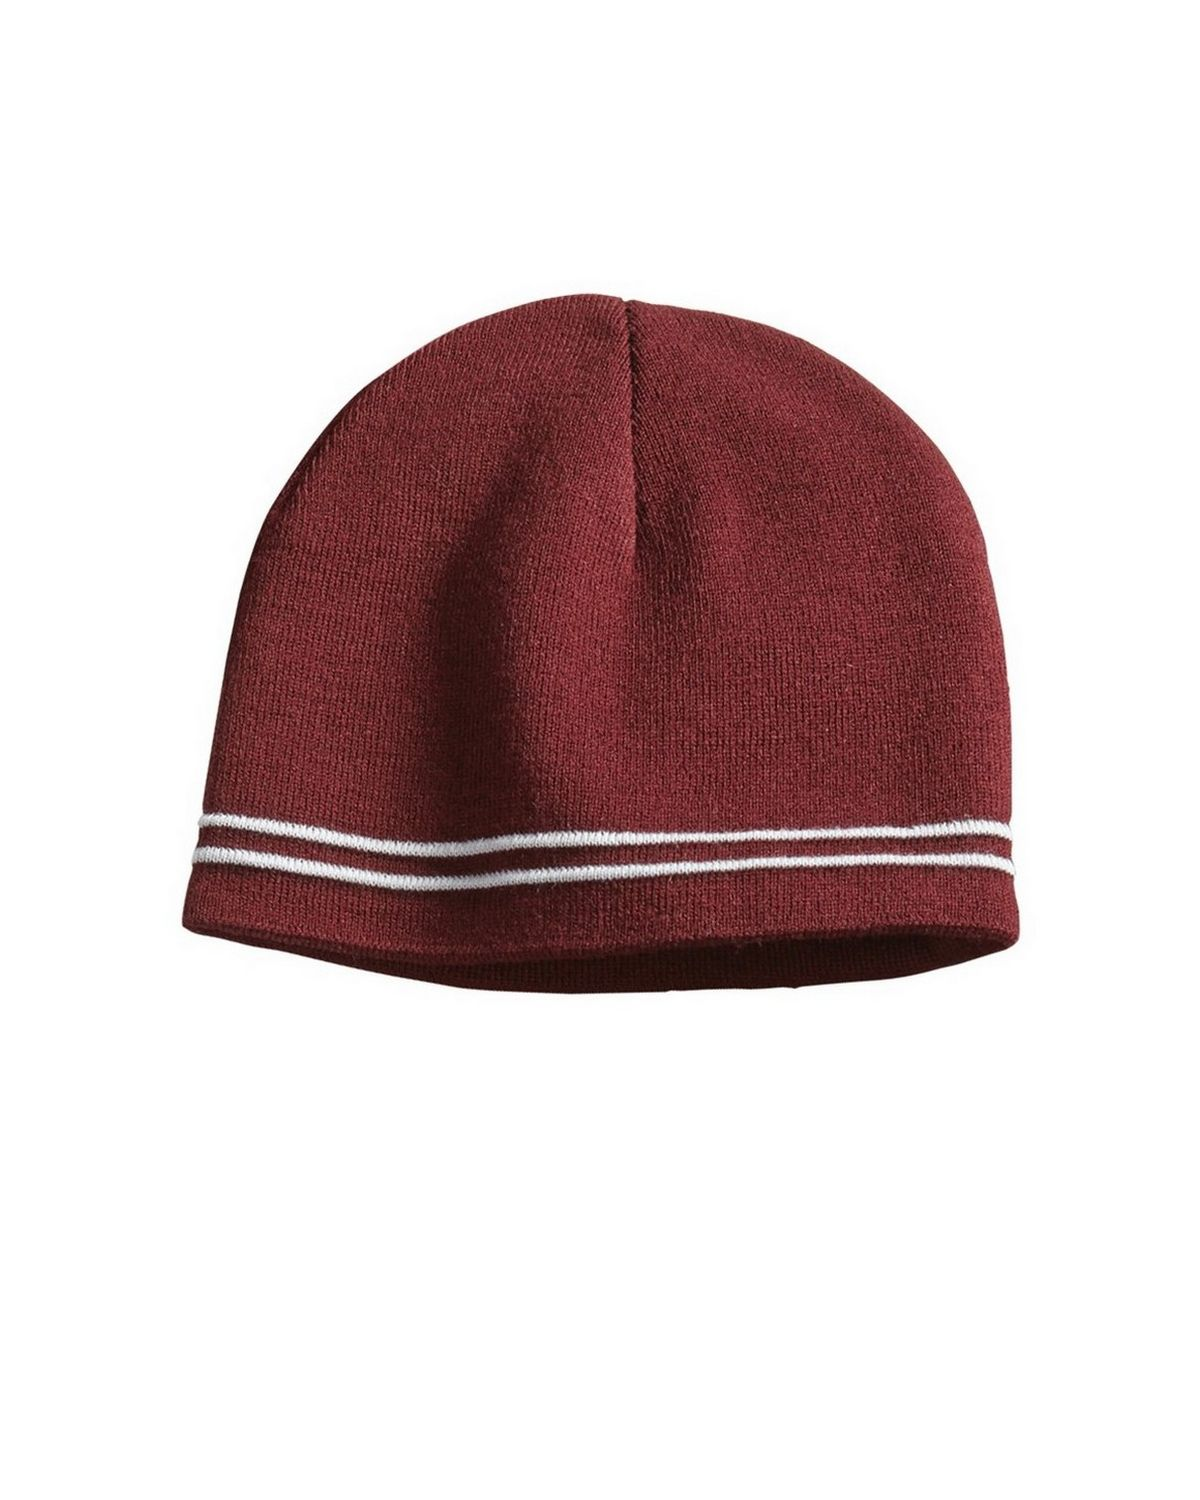 5e79b79fe49 Buy Sport-Tek STC20 Spectator Beanie by Port Authority